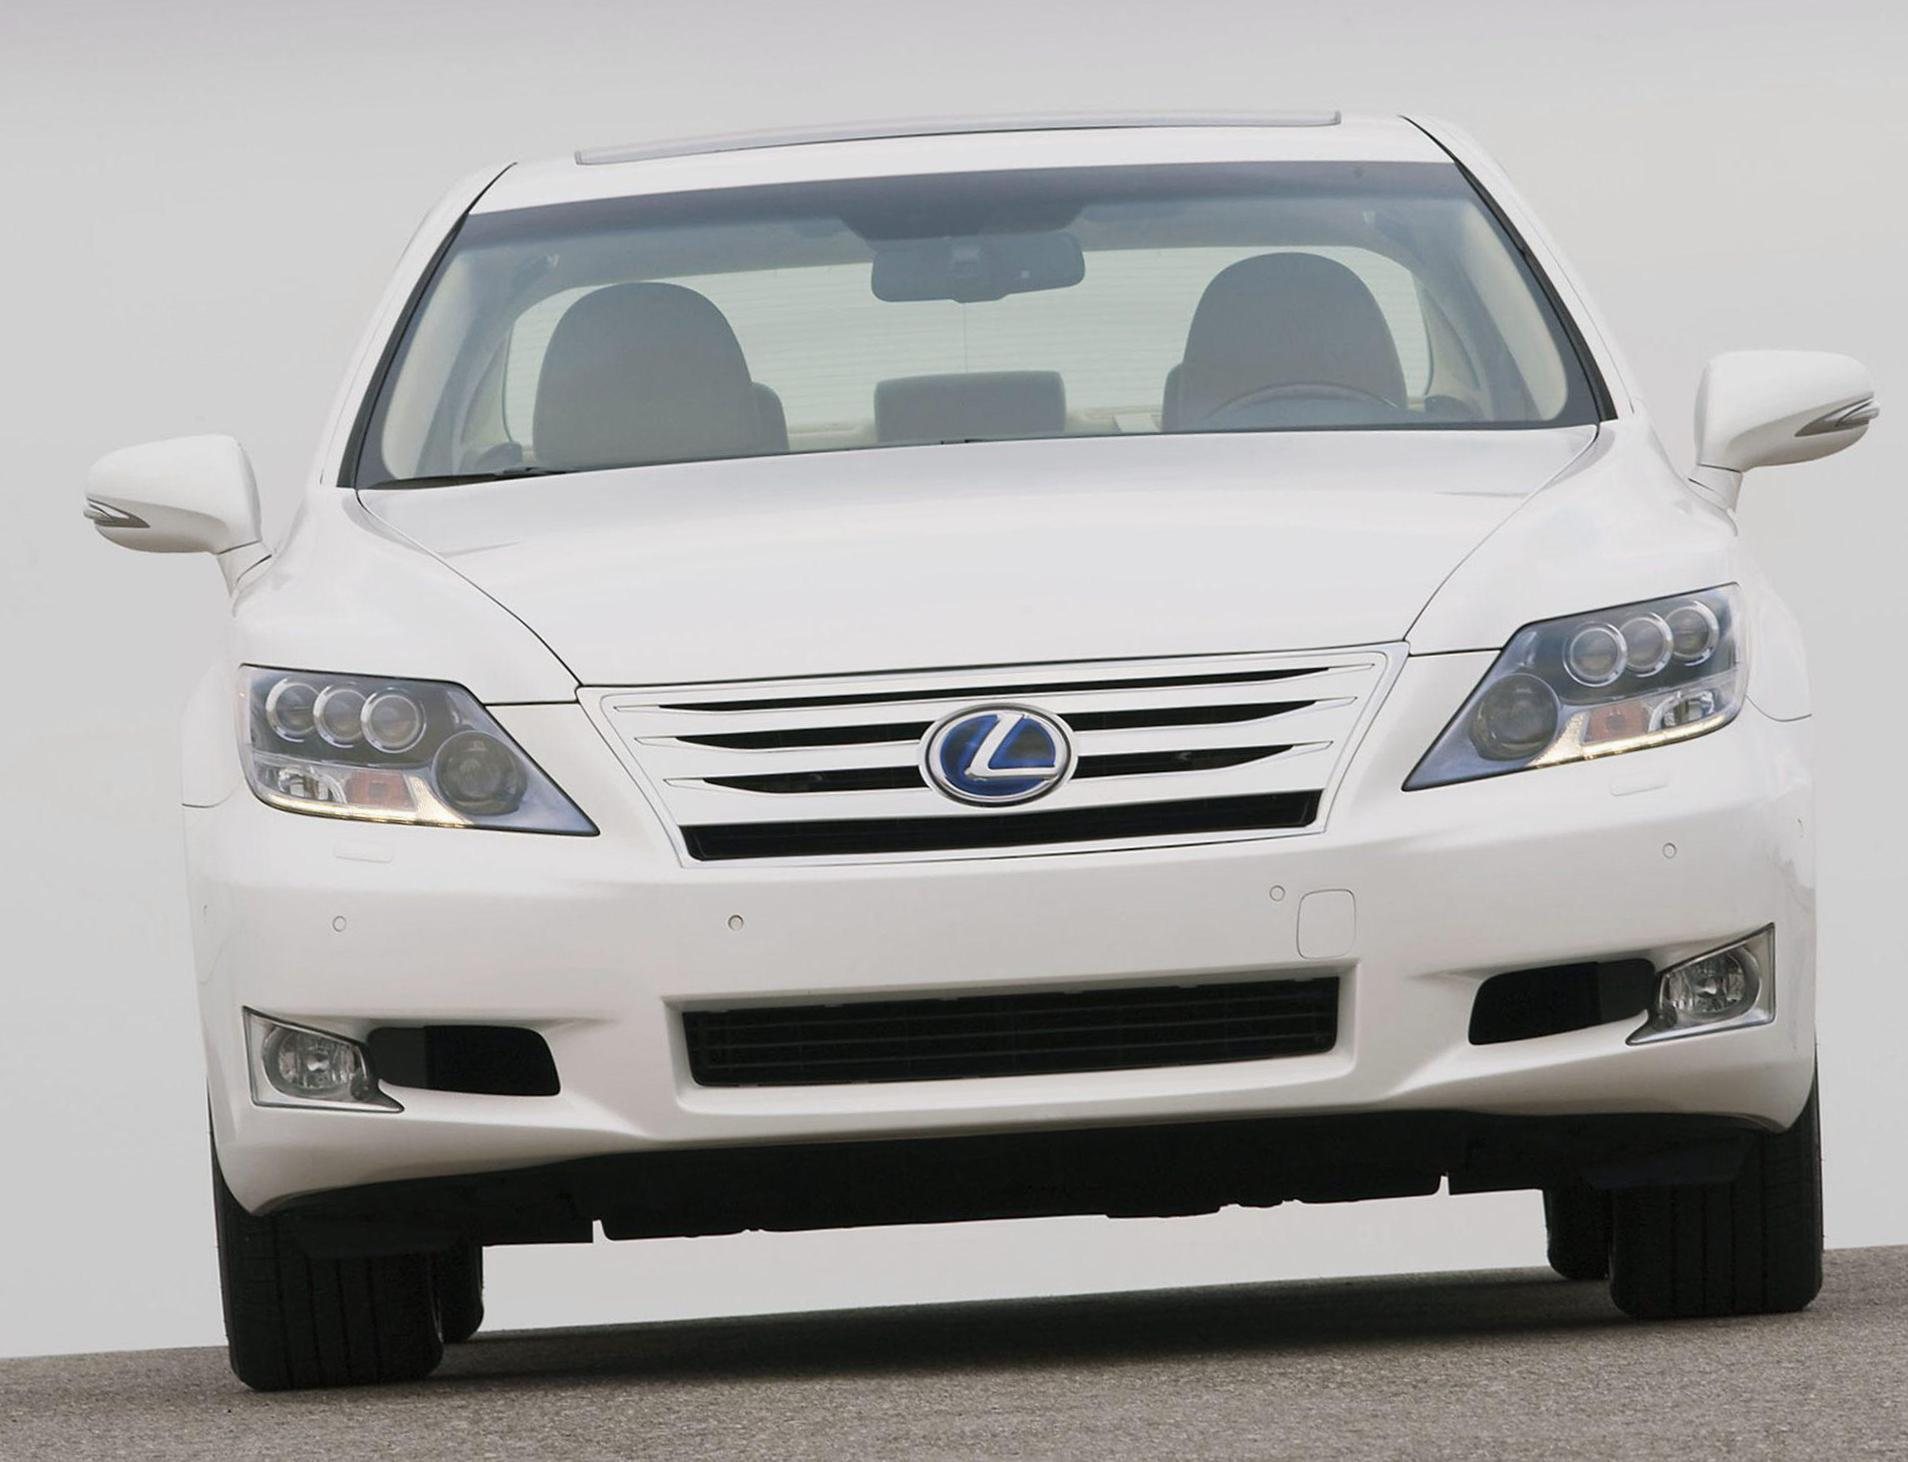 LS 600h Lexus used sedan